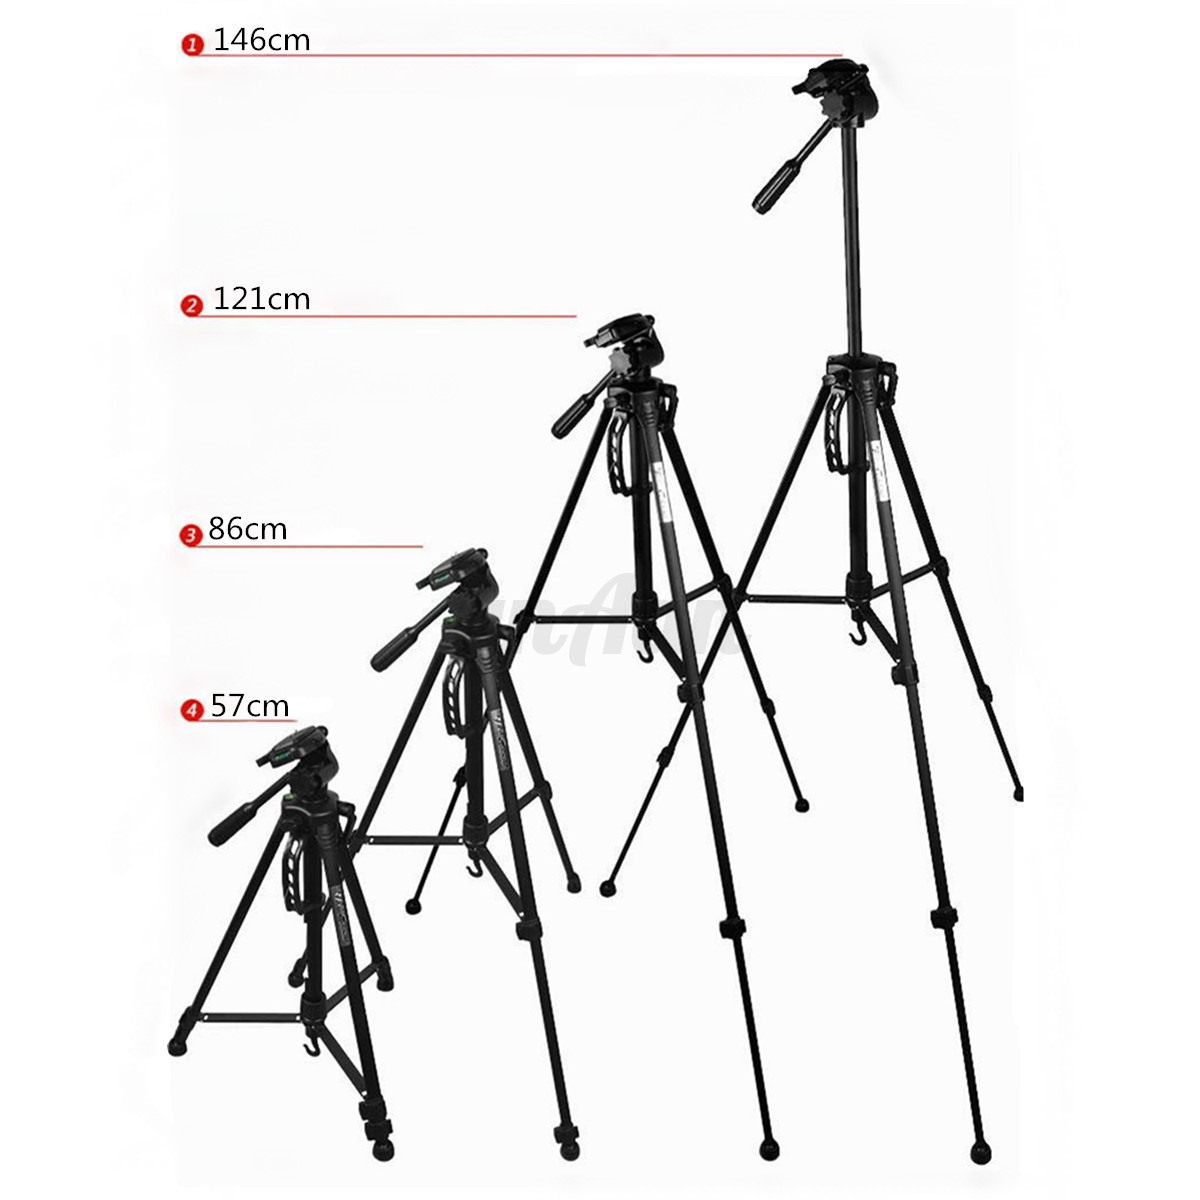 New Weifeng WT-3530 Tripod Stand With Carry Case For